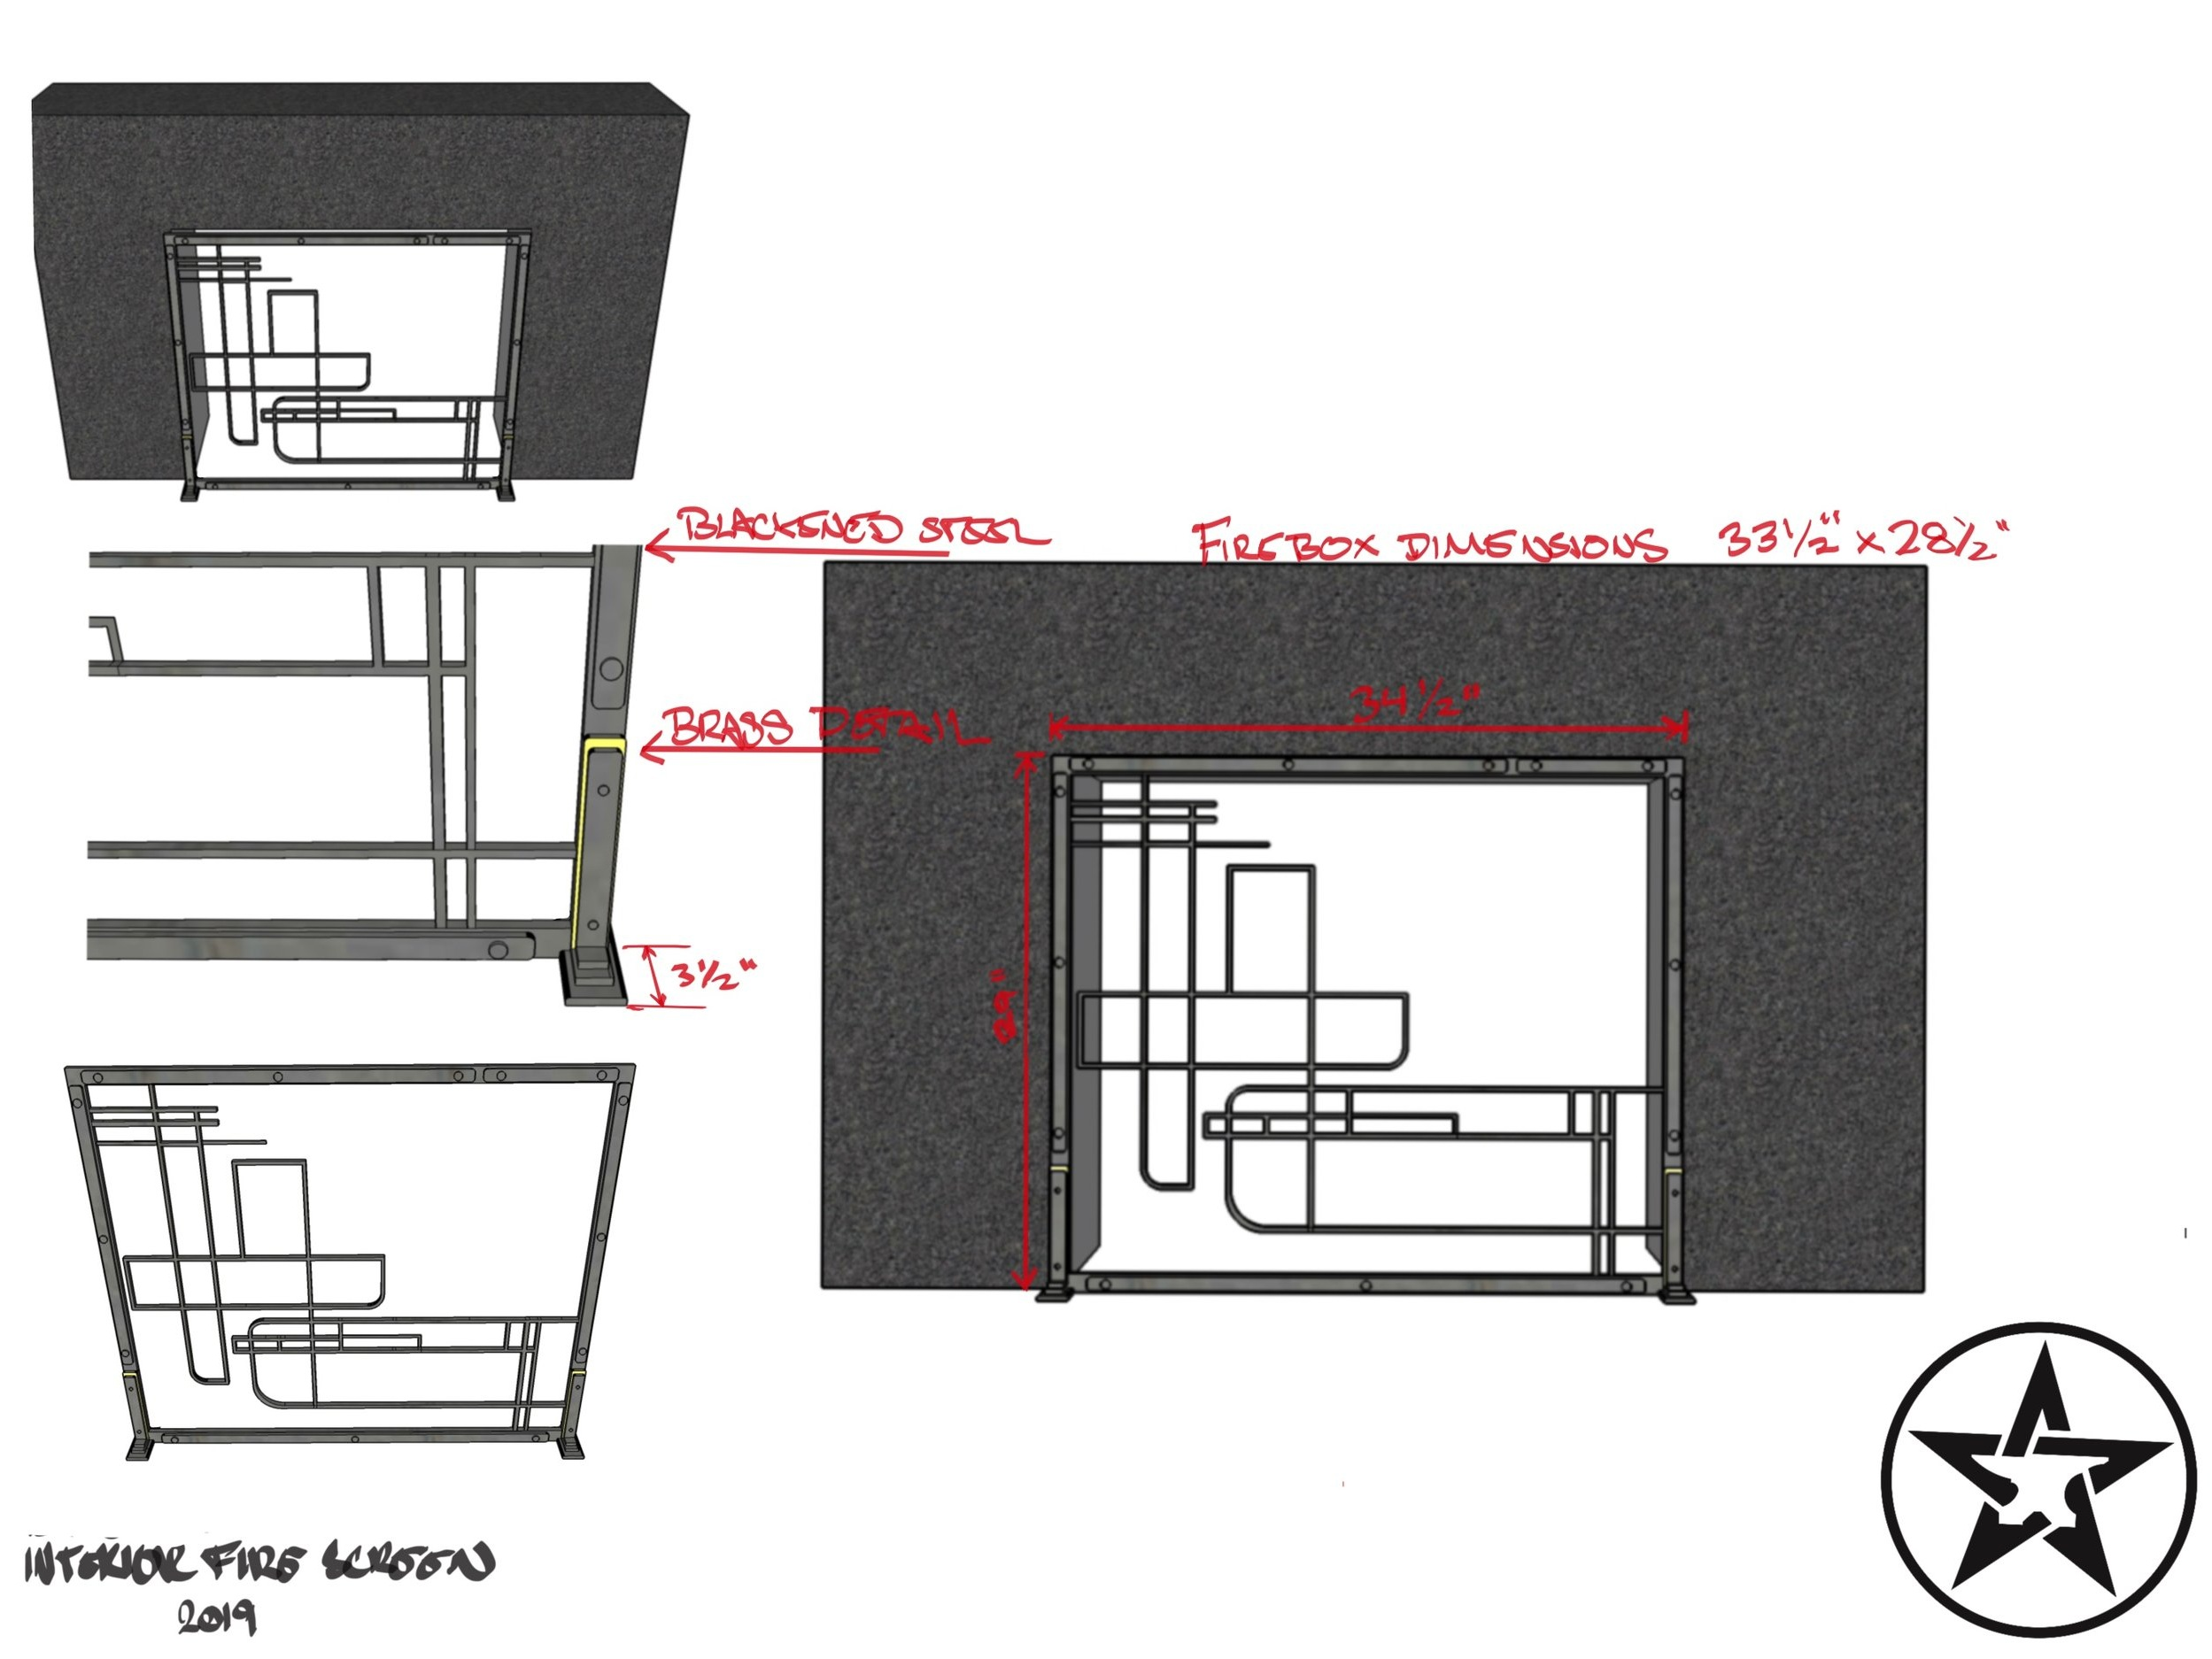 Step Three   Proposal  Once we've arrived on a concept we'll furnish a detailed proposal describing the work we'll do and scope of the project. Included in this proposal will be the finishes, materials, timelines, and terms of payment.